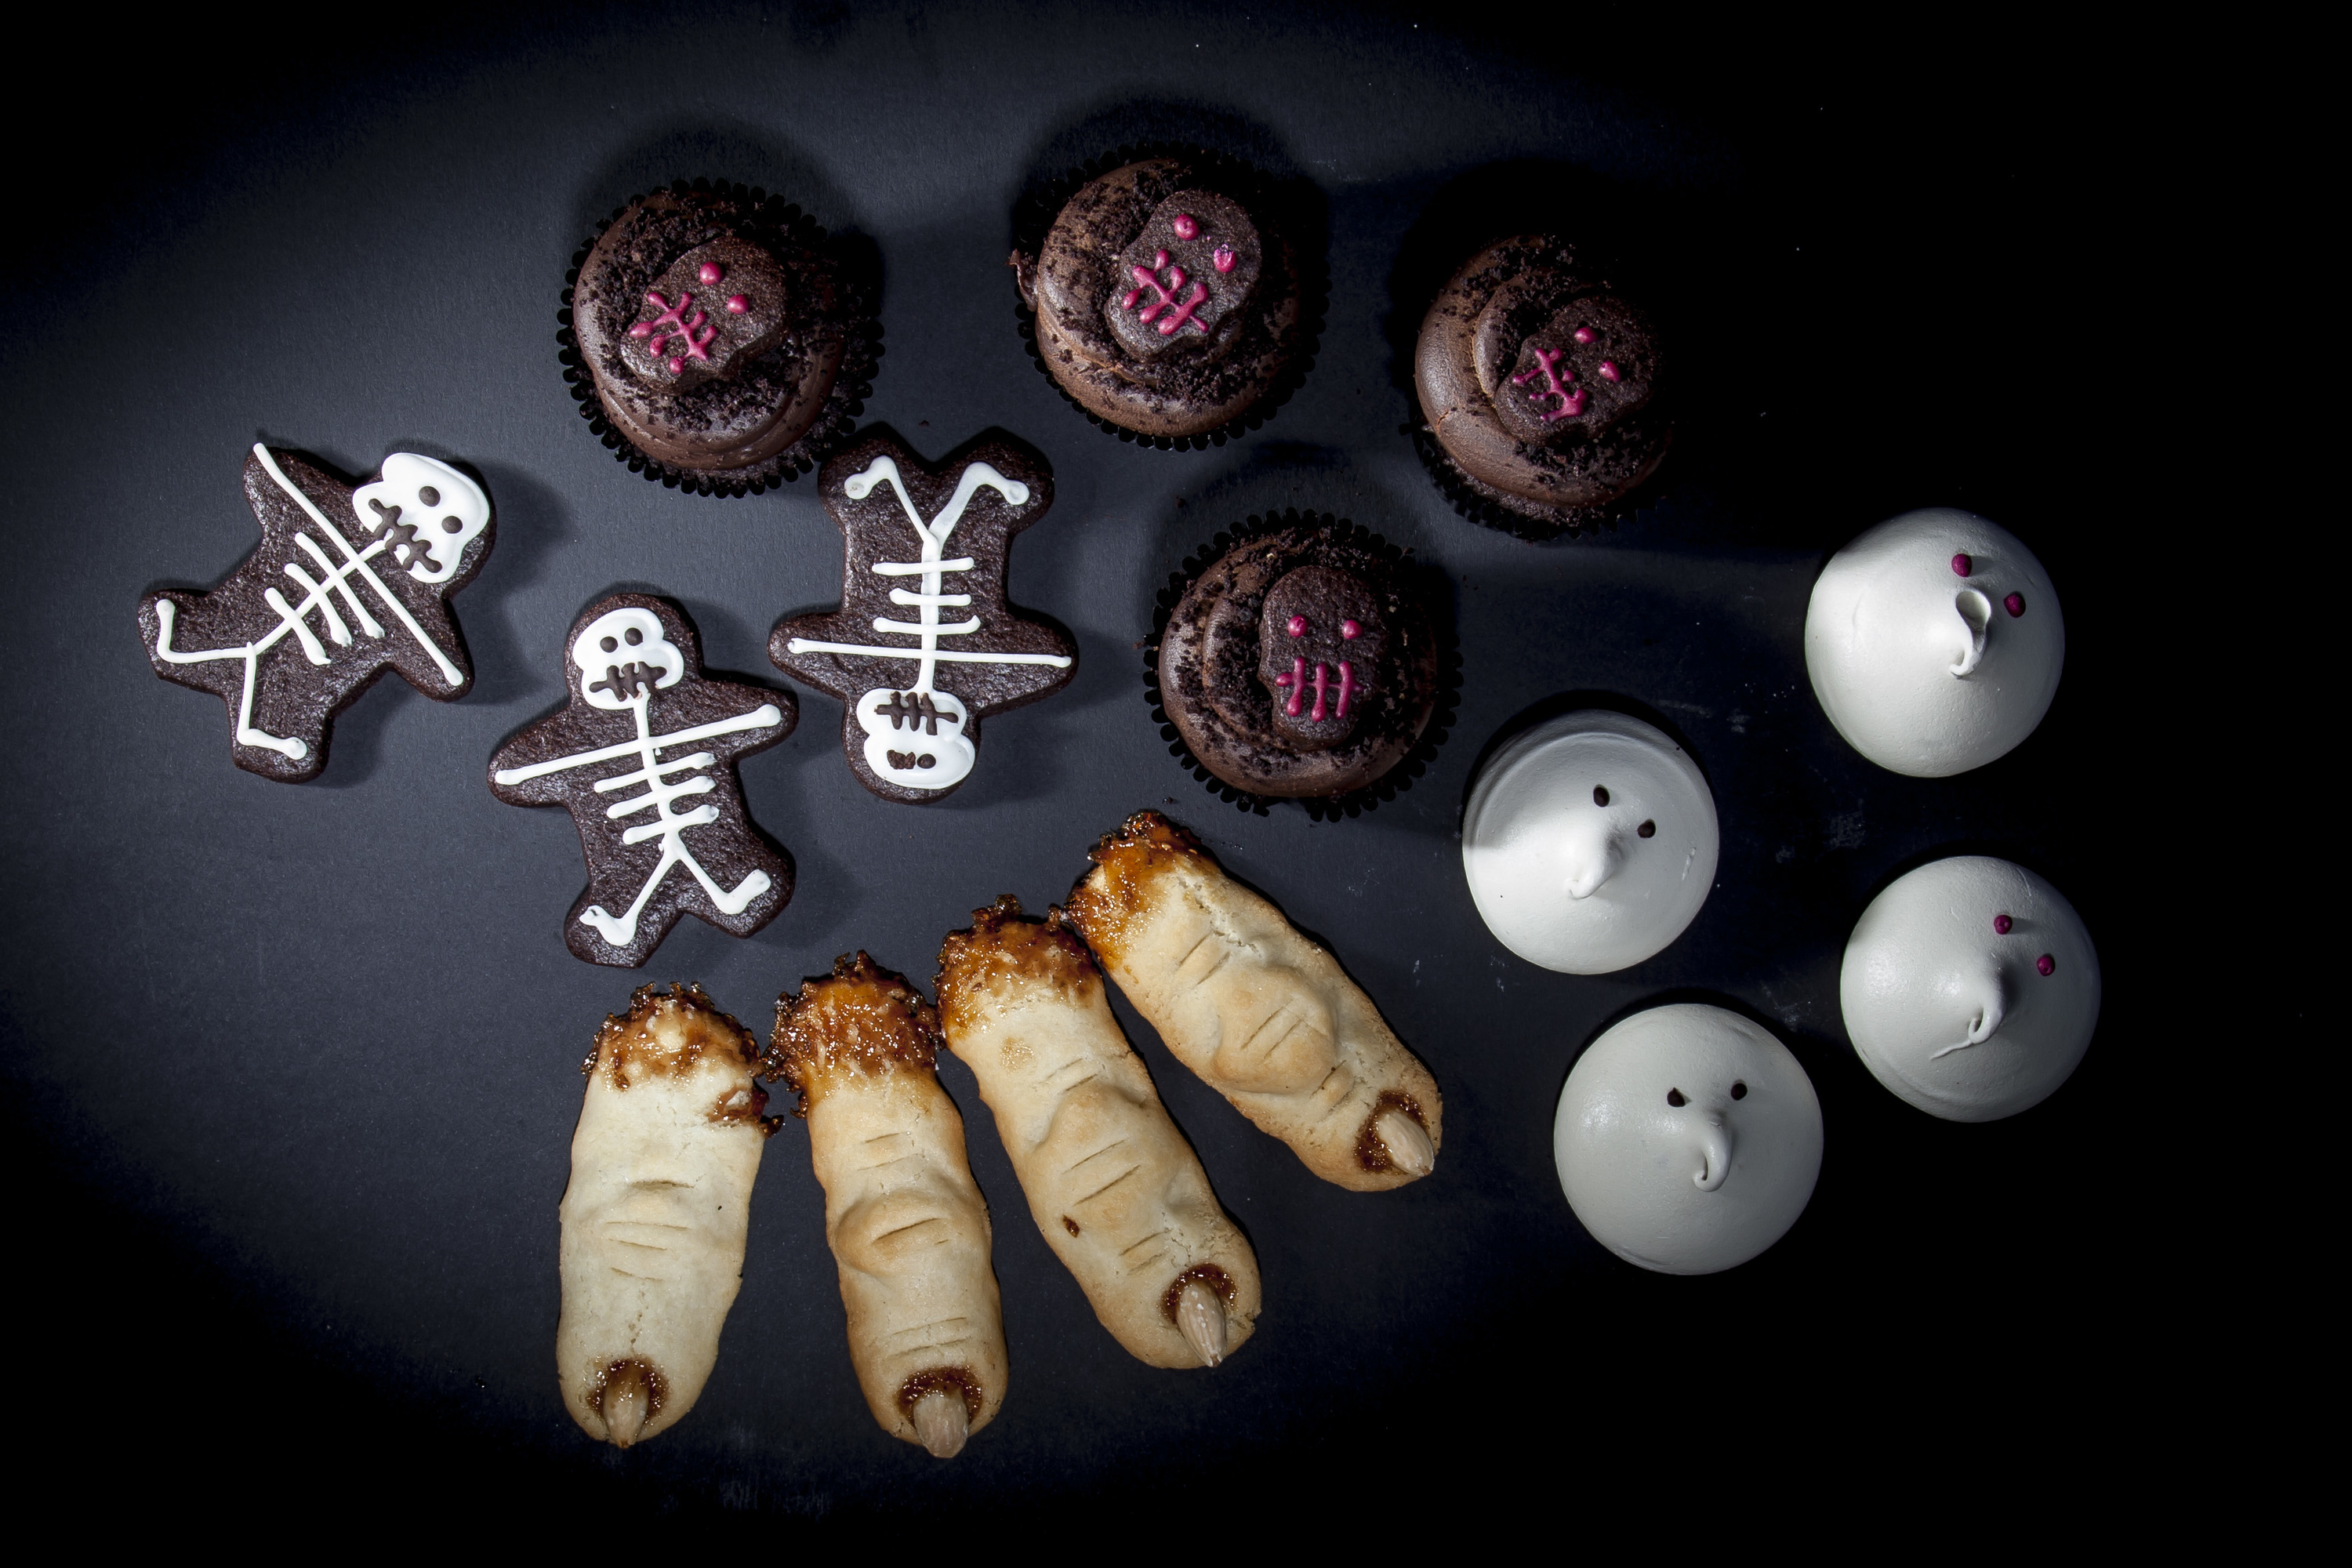 Spooky biscuits from Gail's Artisan Bakery